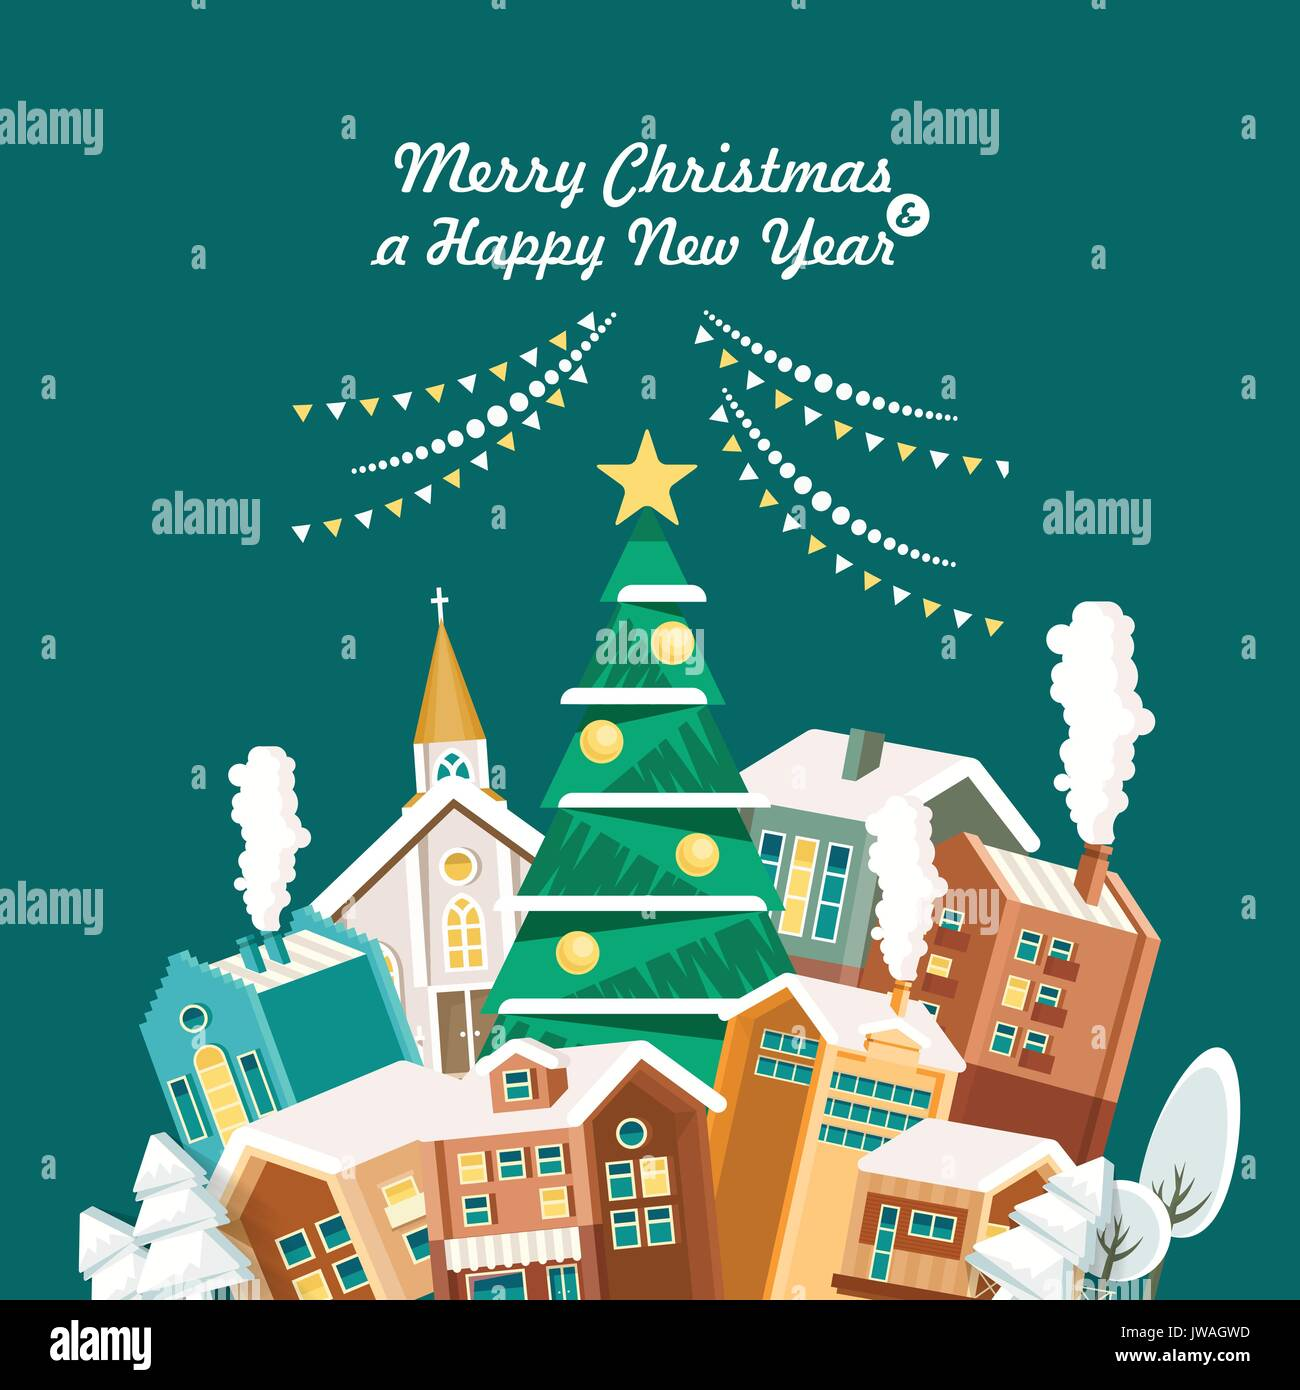 Merry christmas and a happy new year vector greeting card in modern merry christmas and a happy new year vector greeting card in modern flat design christmas town snowy landscape m4hsunfo